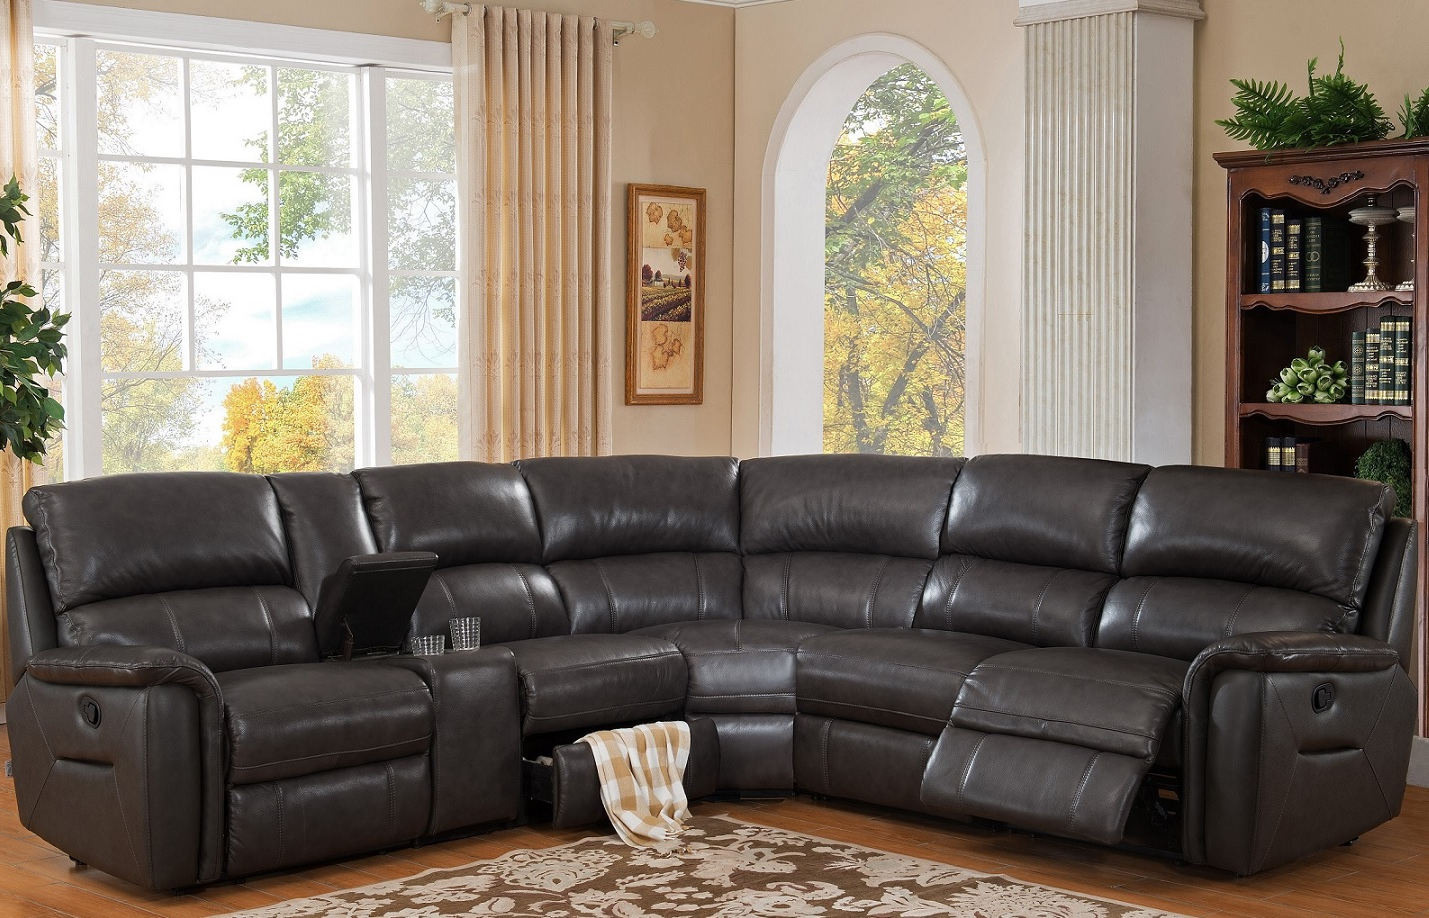 Sofas In Burton Leather 3 Piece Sectionals (Gallery 7 of 20)